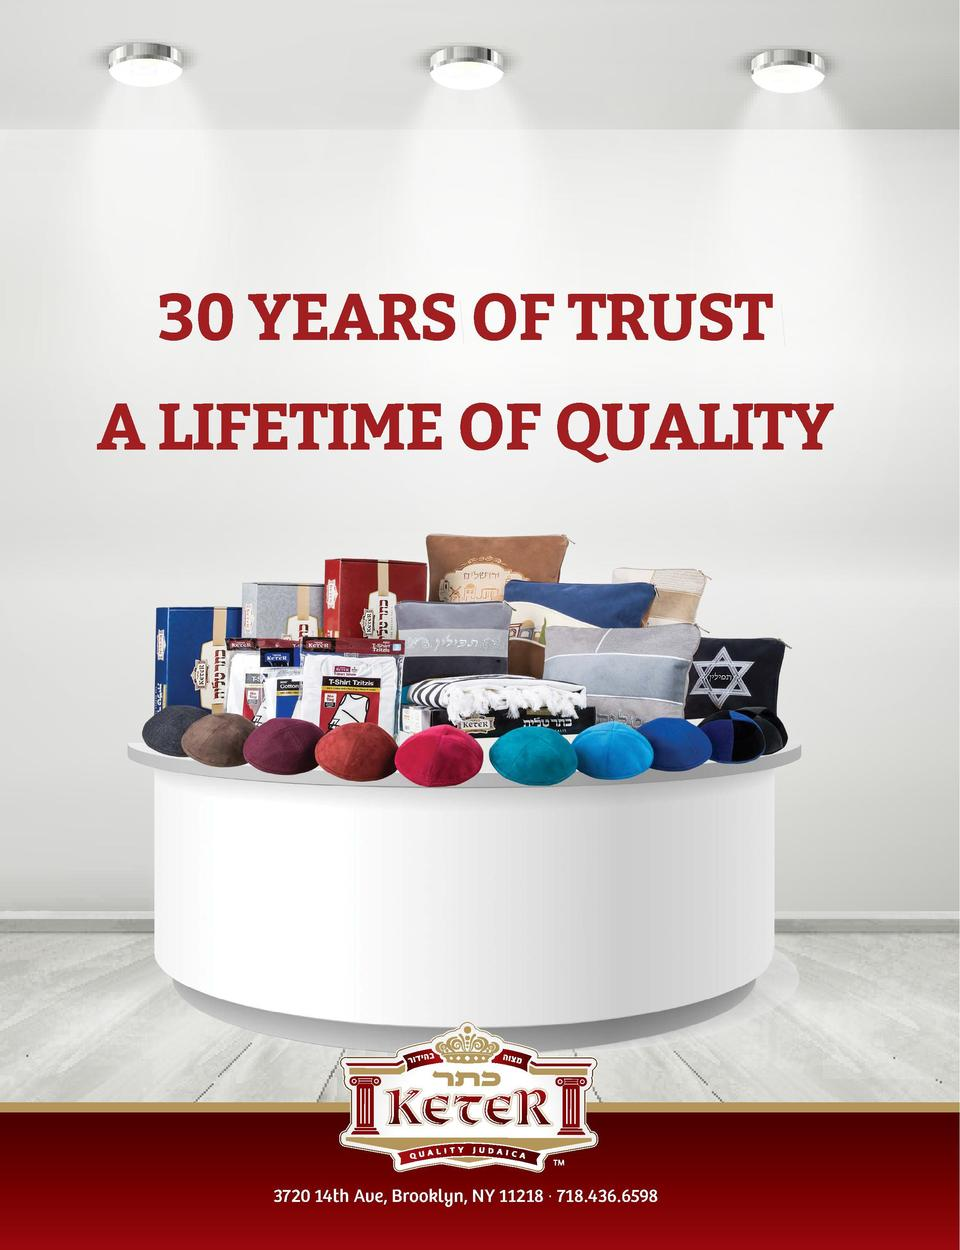 BYLINE  30 YEARS OF TRUST A LIFETIME OF QUALITY  EDITOR Yitty Denciger ART   MARKETING Tzivia Cohen Miriam Reifman 14minds...